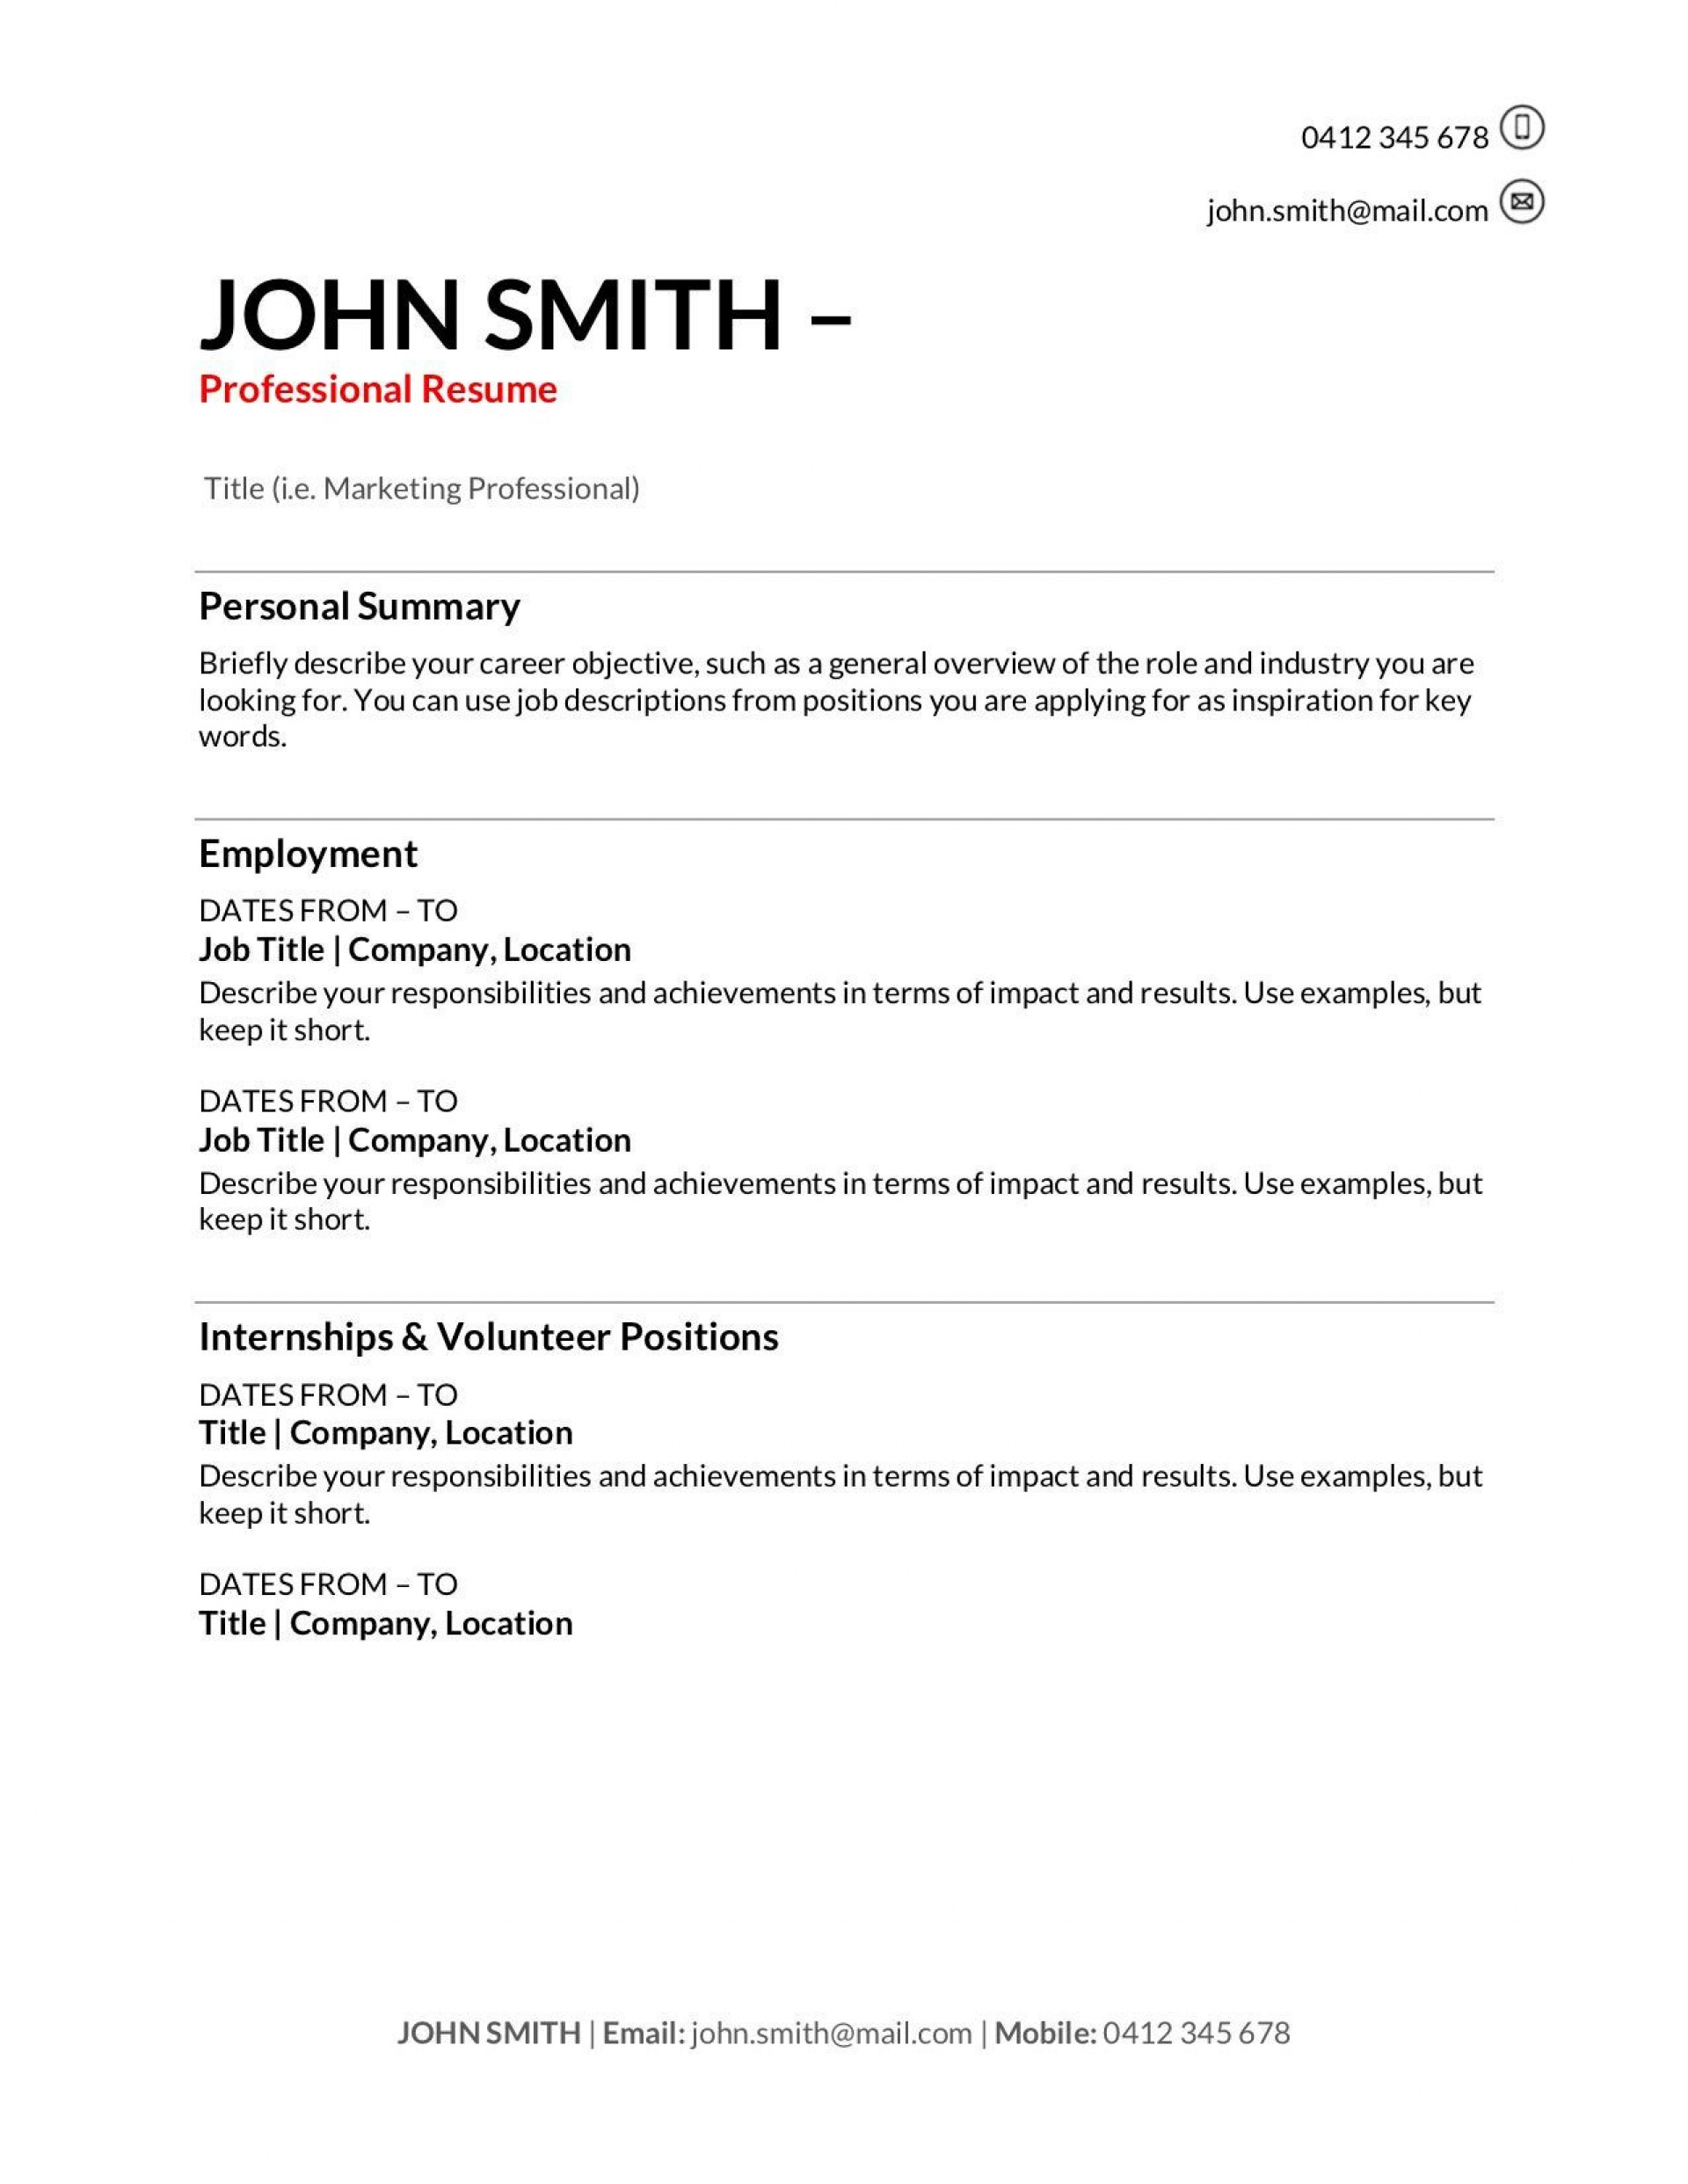 008 Awful Professional Resume Template Example Picture  Examples Layout Cv Writing Format1920